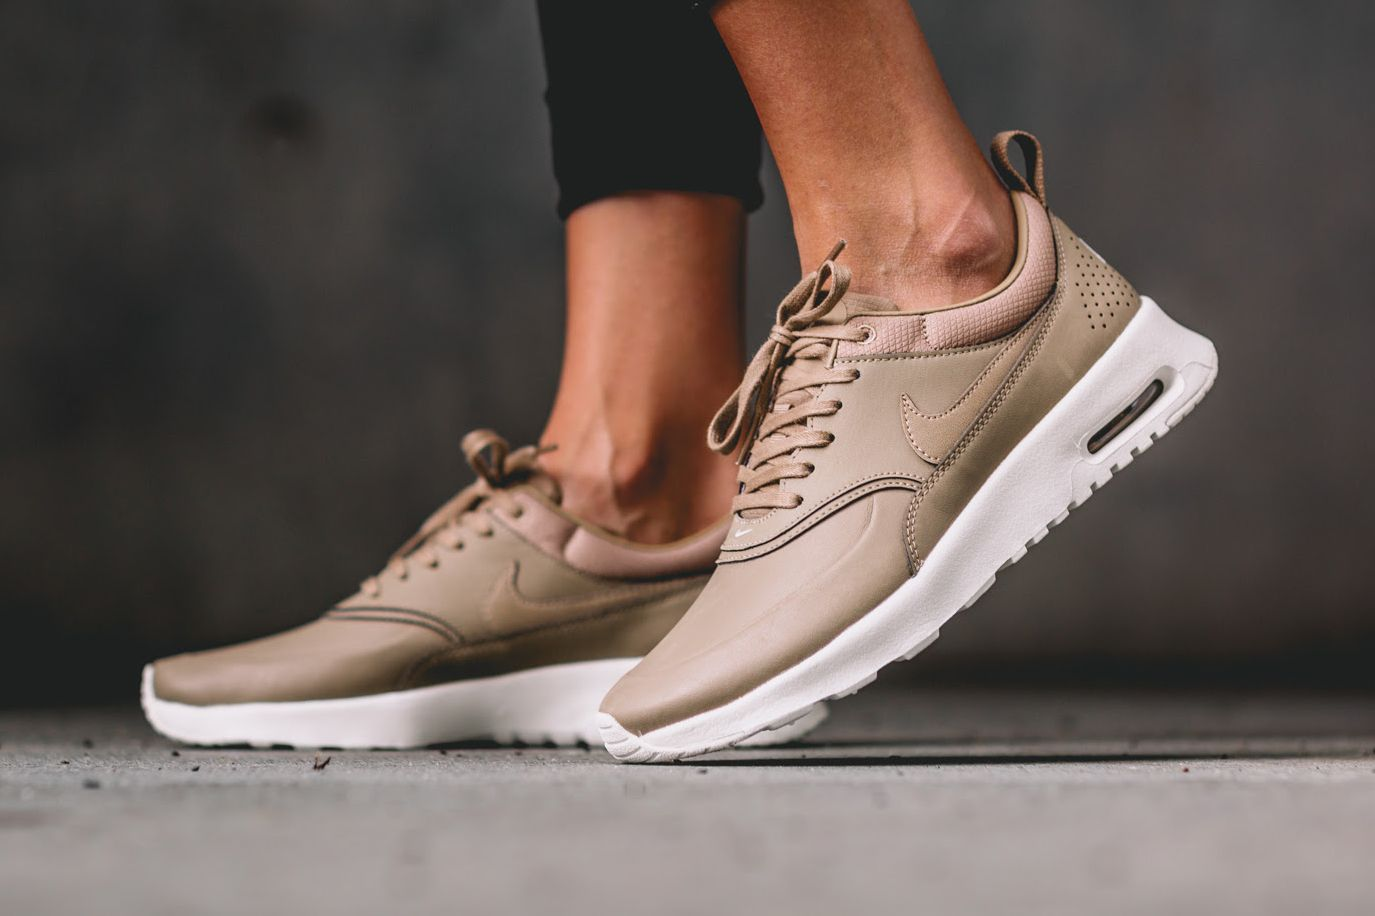 meilleure sélection f2f6f 0e843 Nike Goes in Neutral With the Air Max Thea Premium